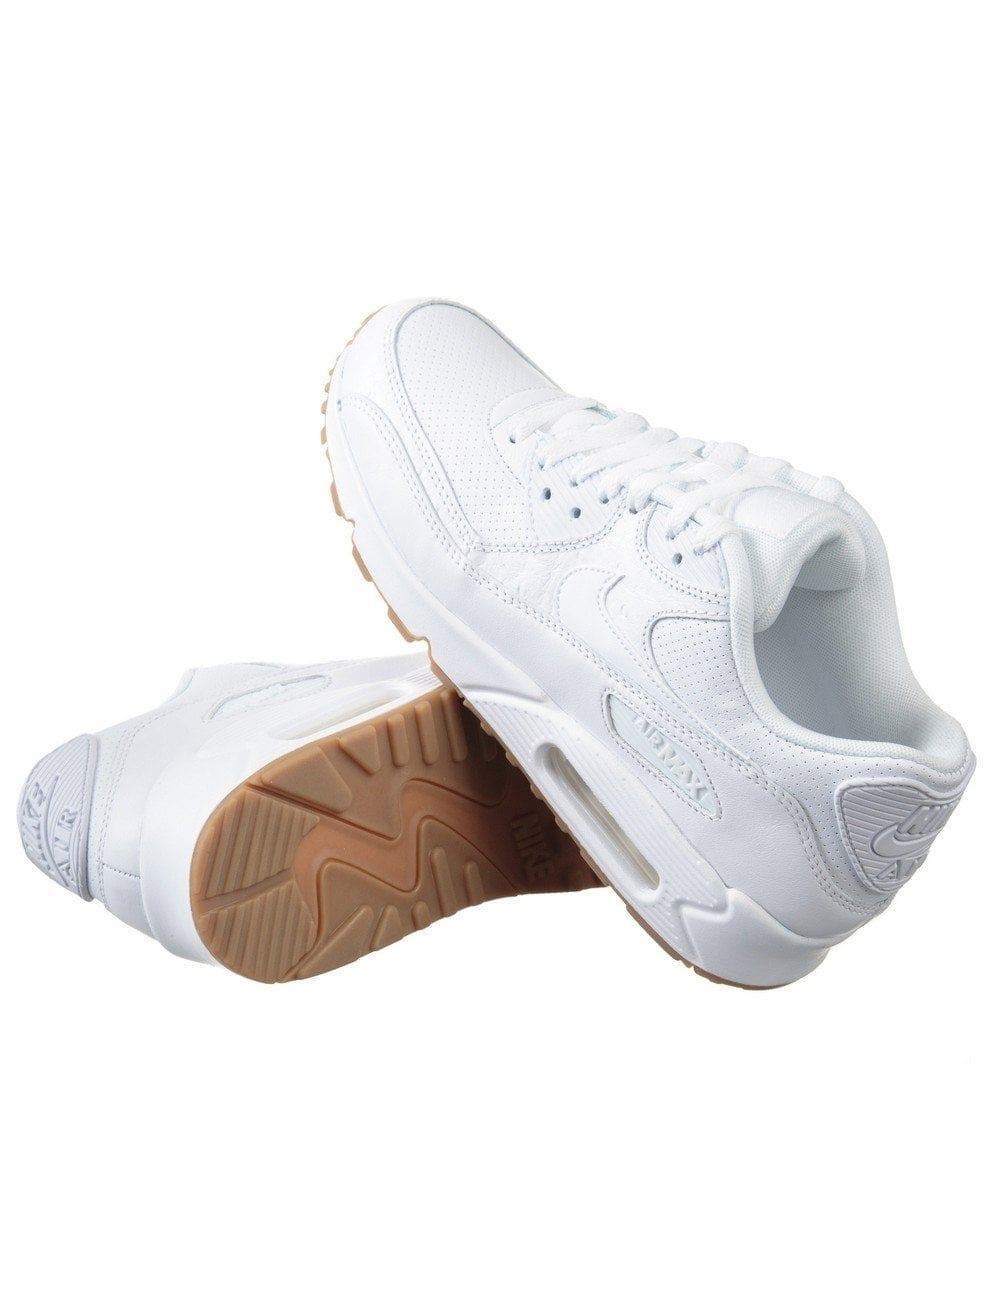 the latest a7507 c4313 Air Max 90 Run PA Shoes - Triple White Gum